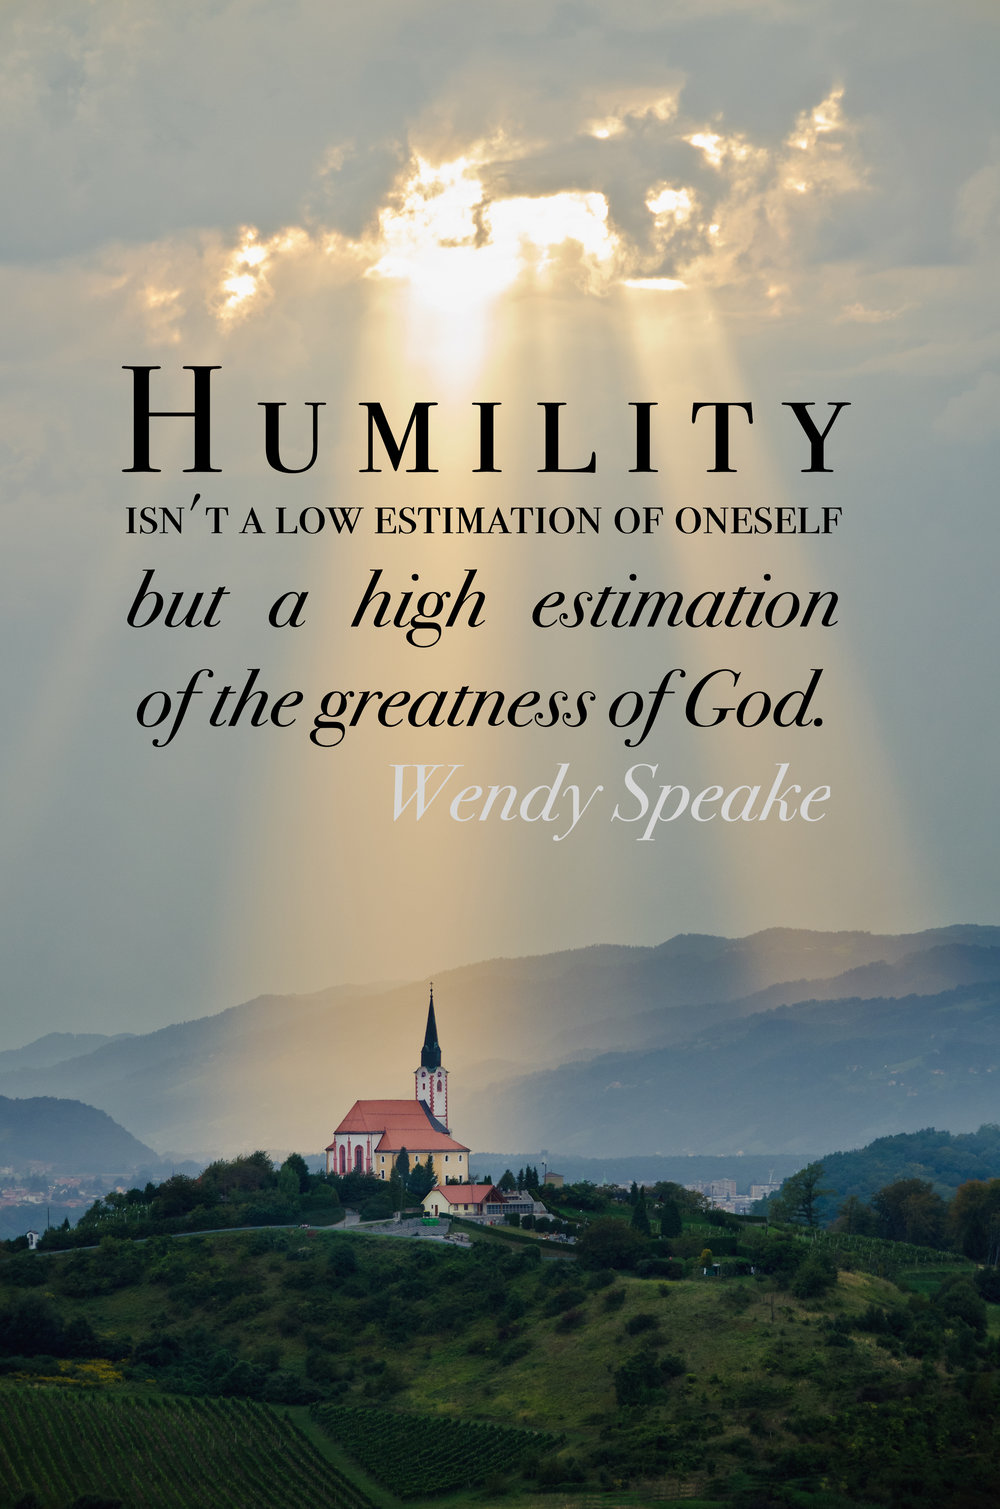 humility-definition.jpeg